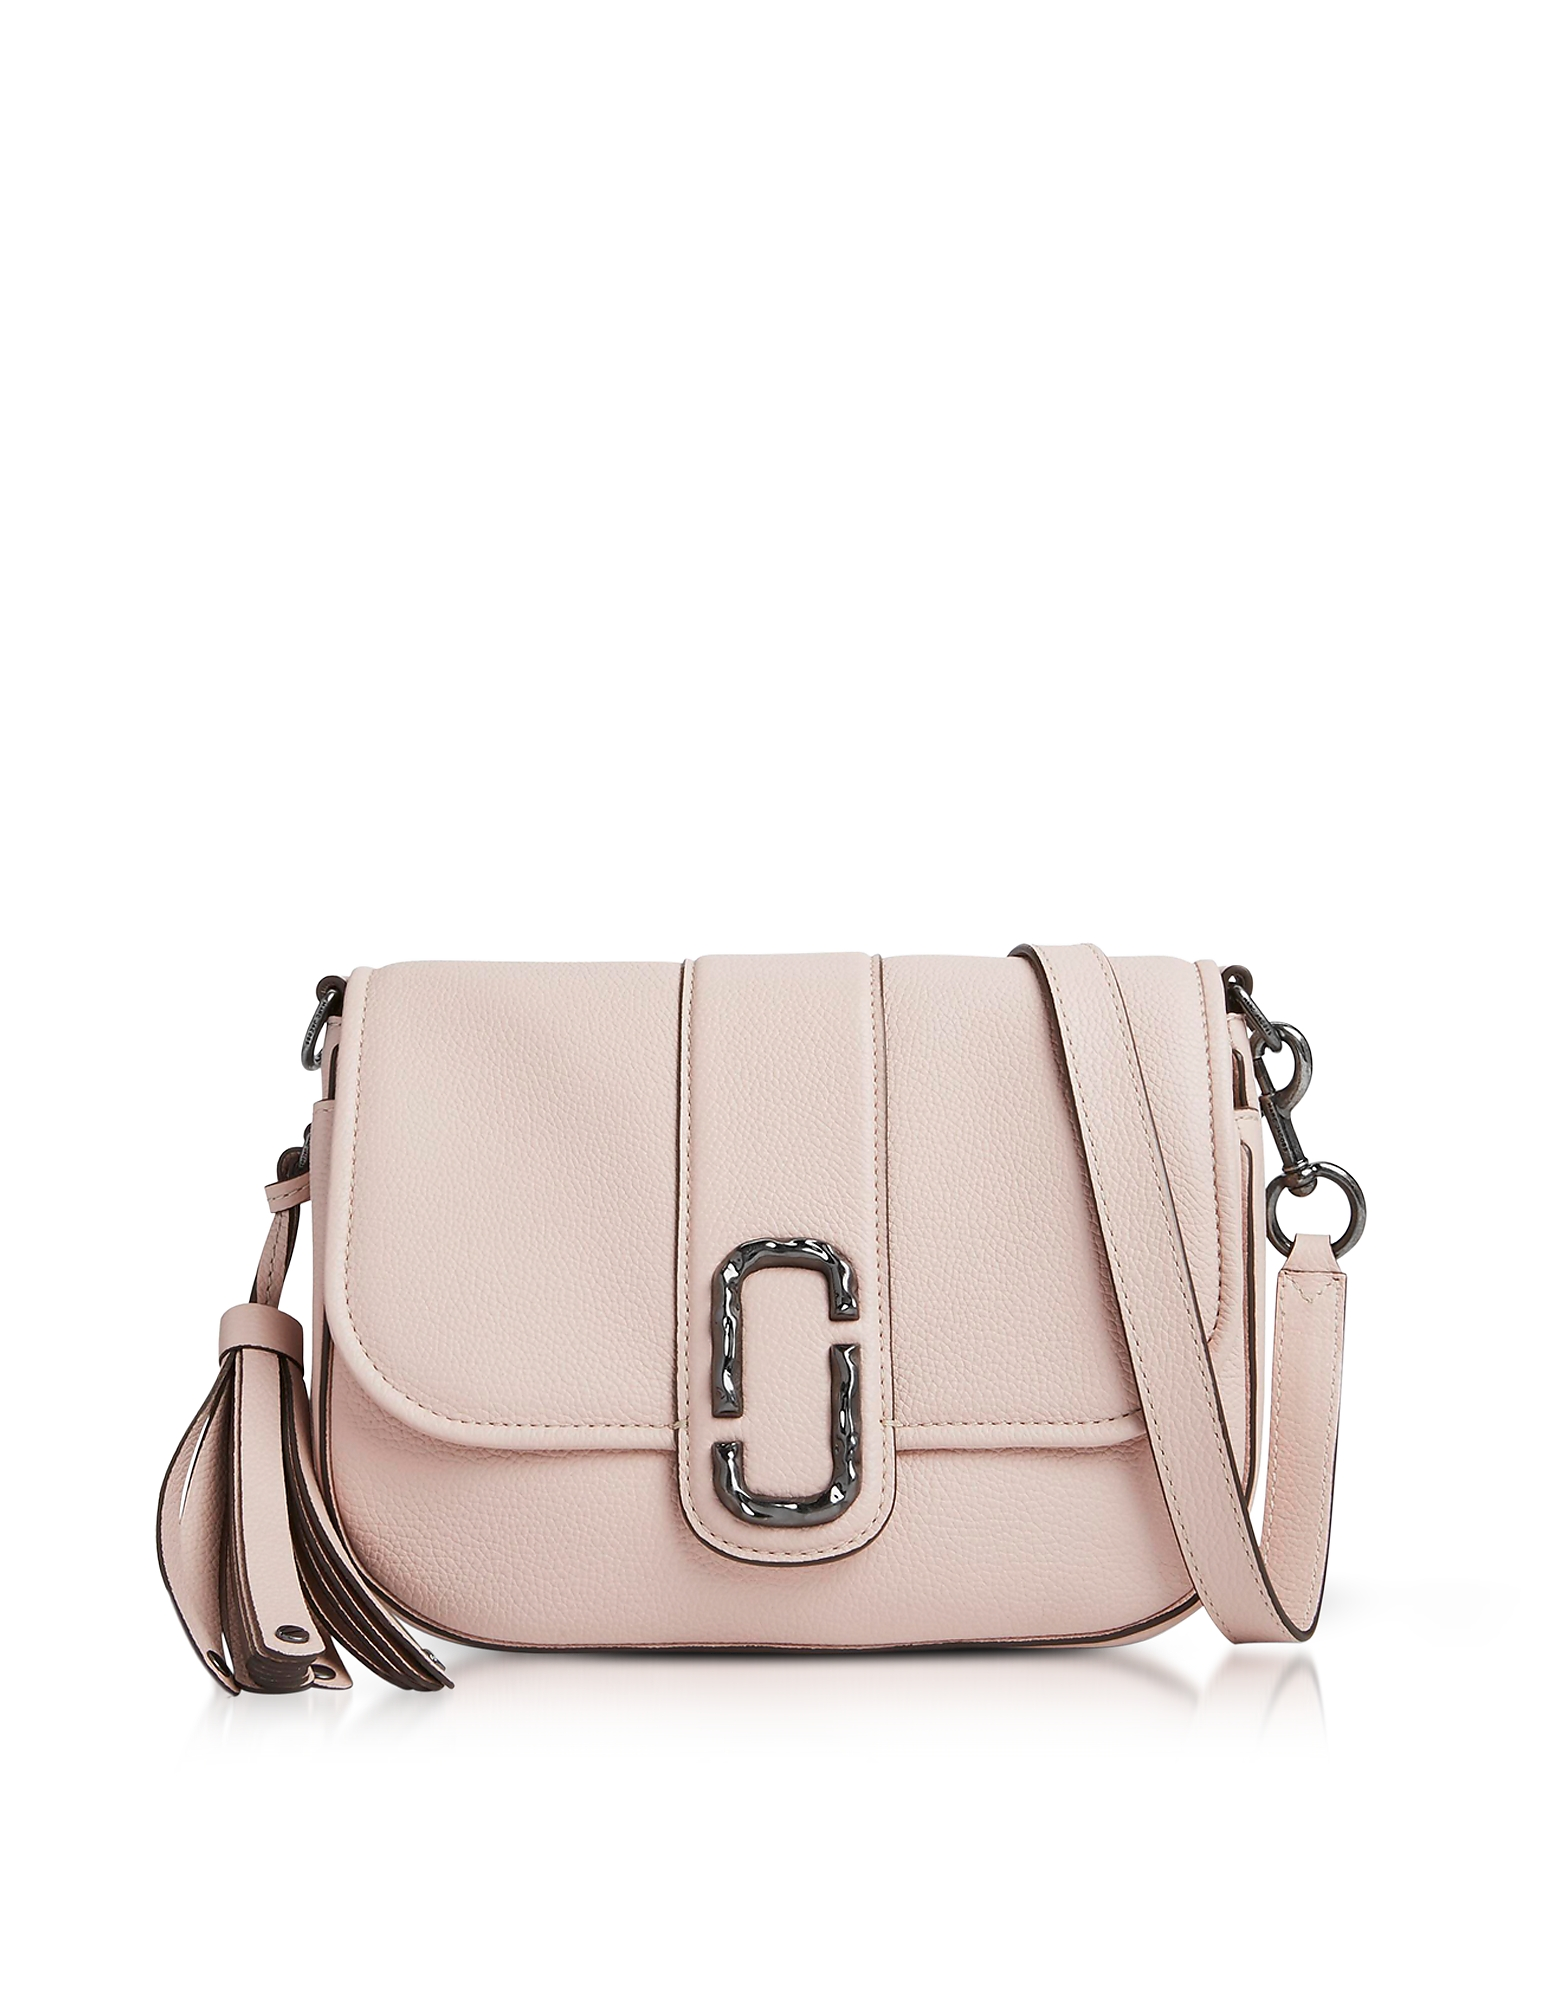 Marc Jacobs Handbags, Pale Pink Pebbled Leather Interlock Small Courier Crossbody Bag